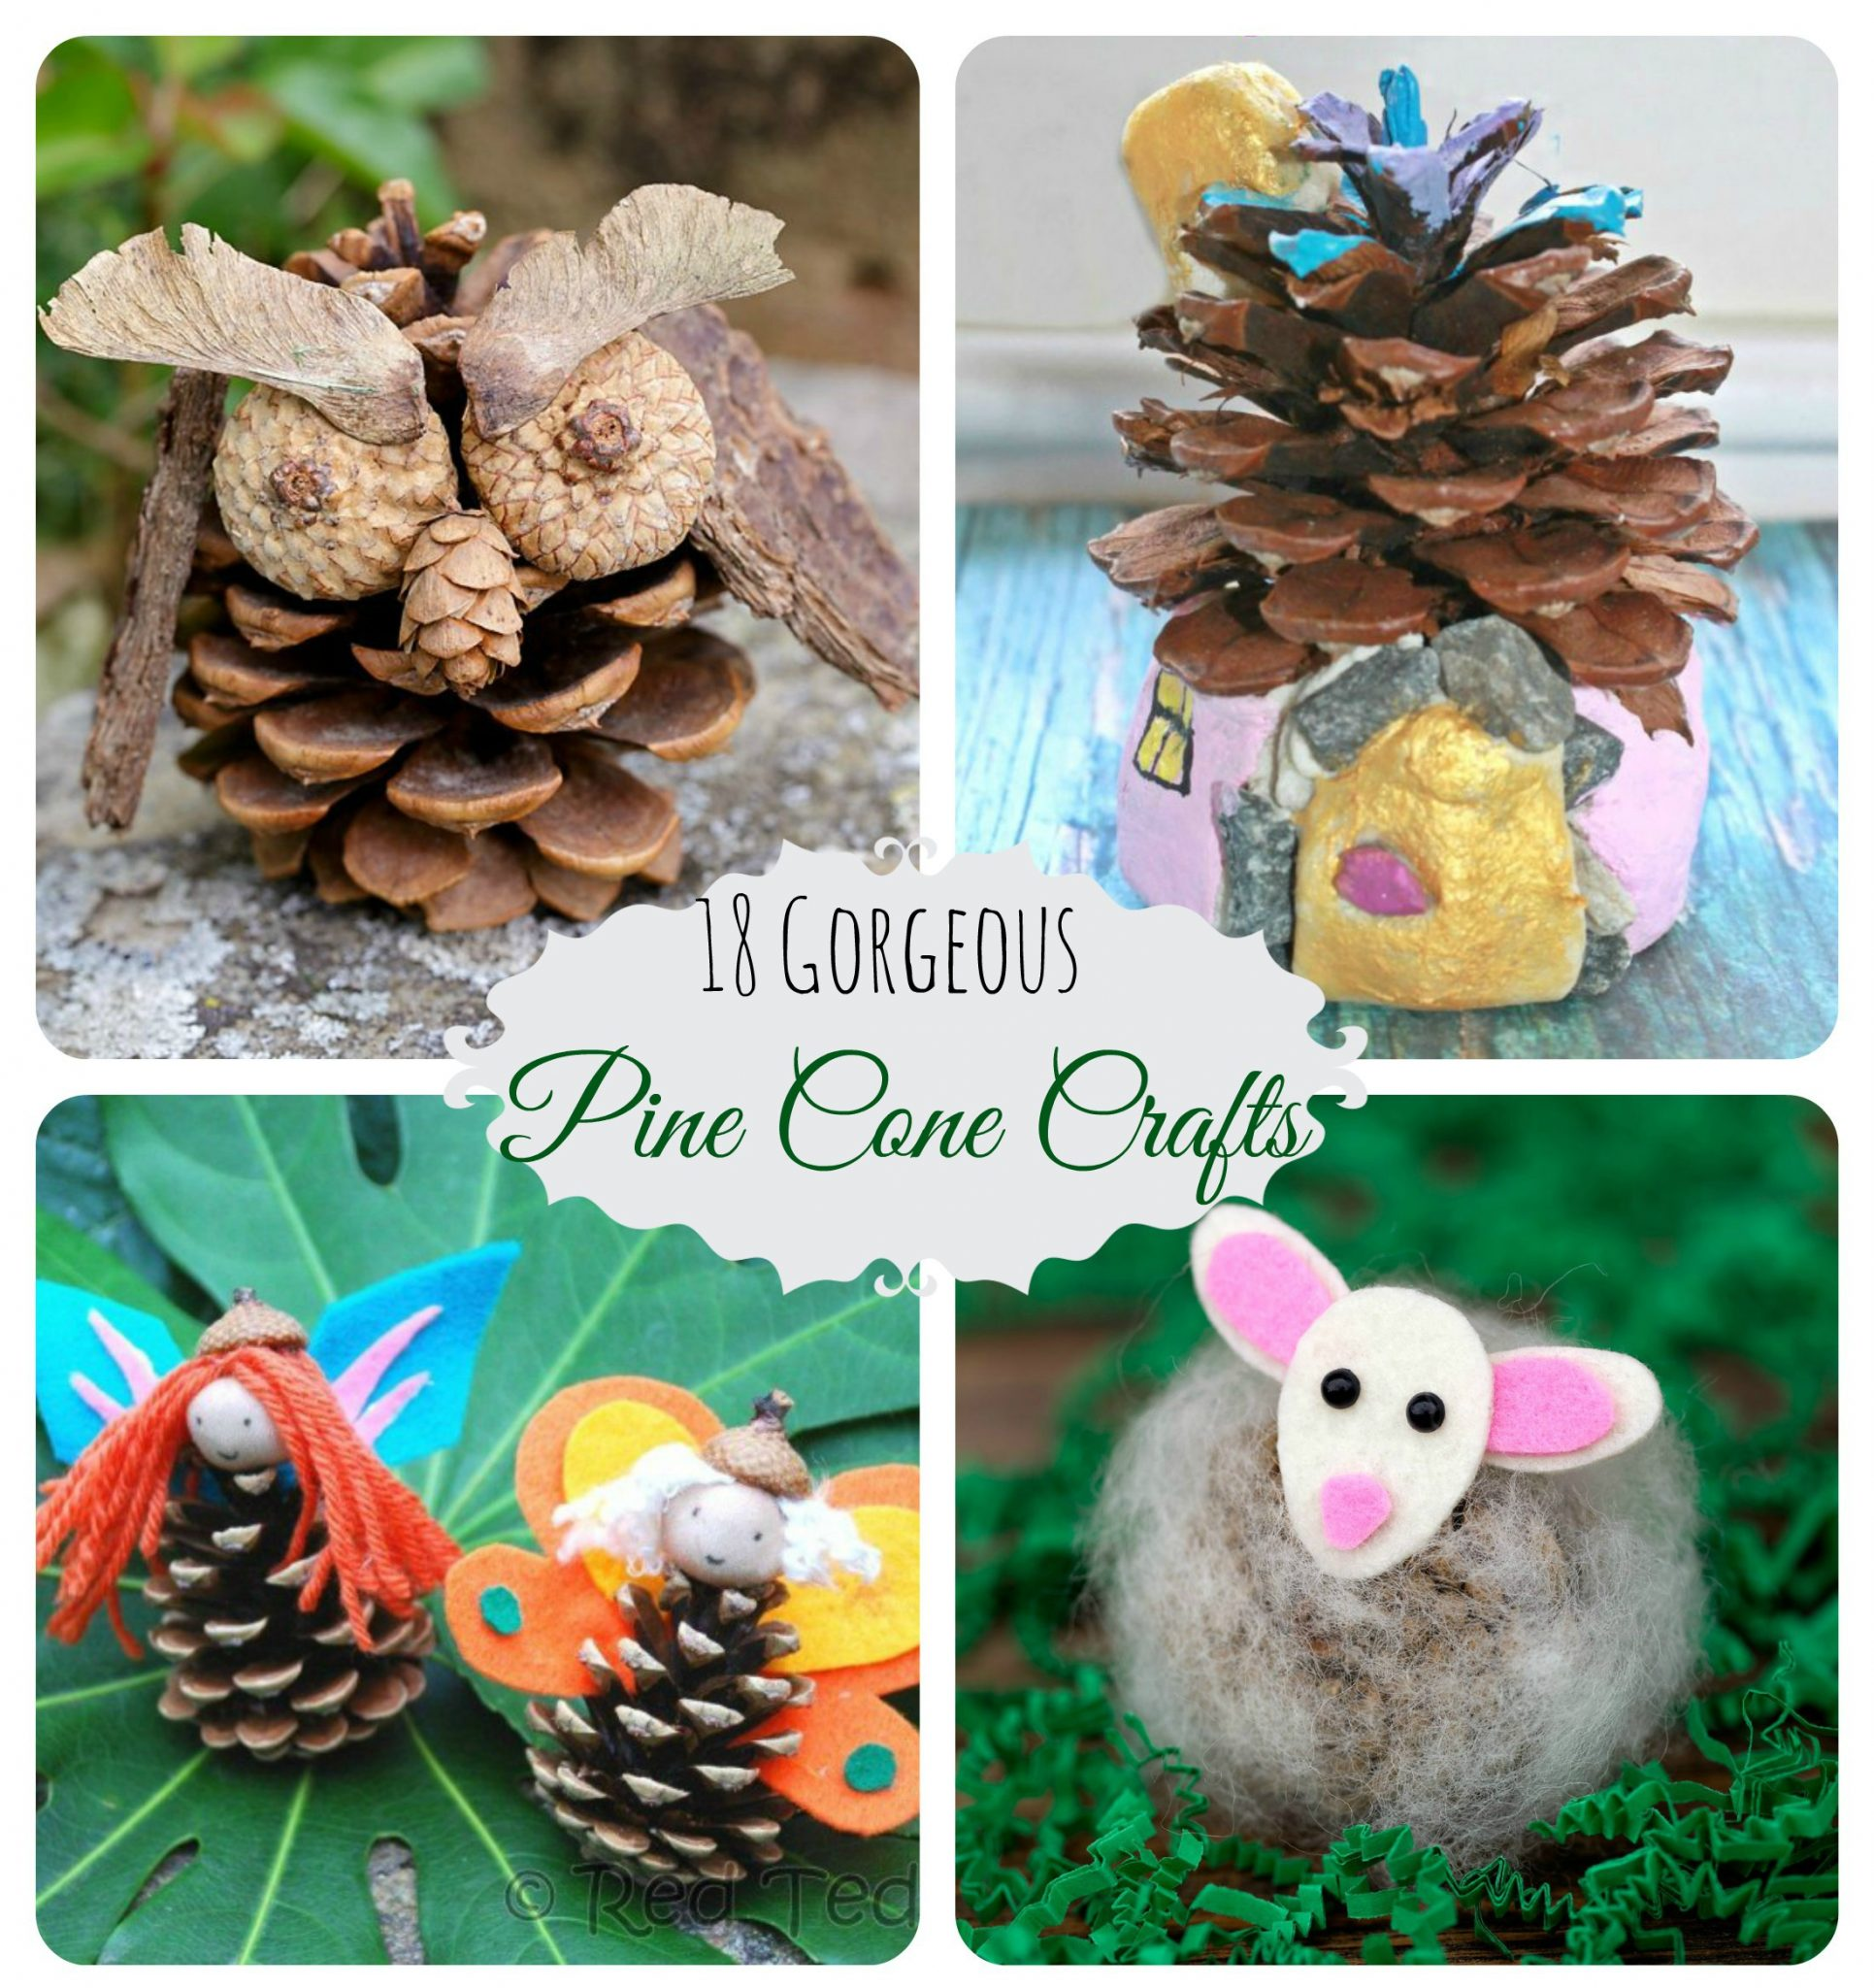 18 gorgeous pine cone crafts the pinterested parent. Black Bedroom Furniture Sets. Home Design Ideas